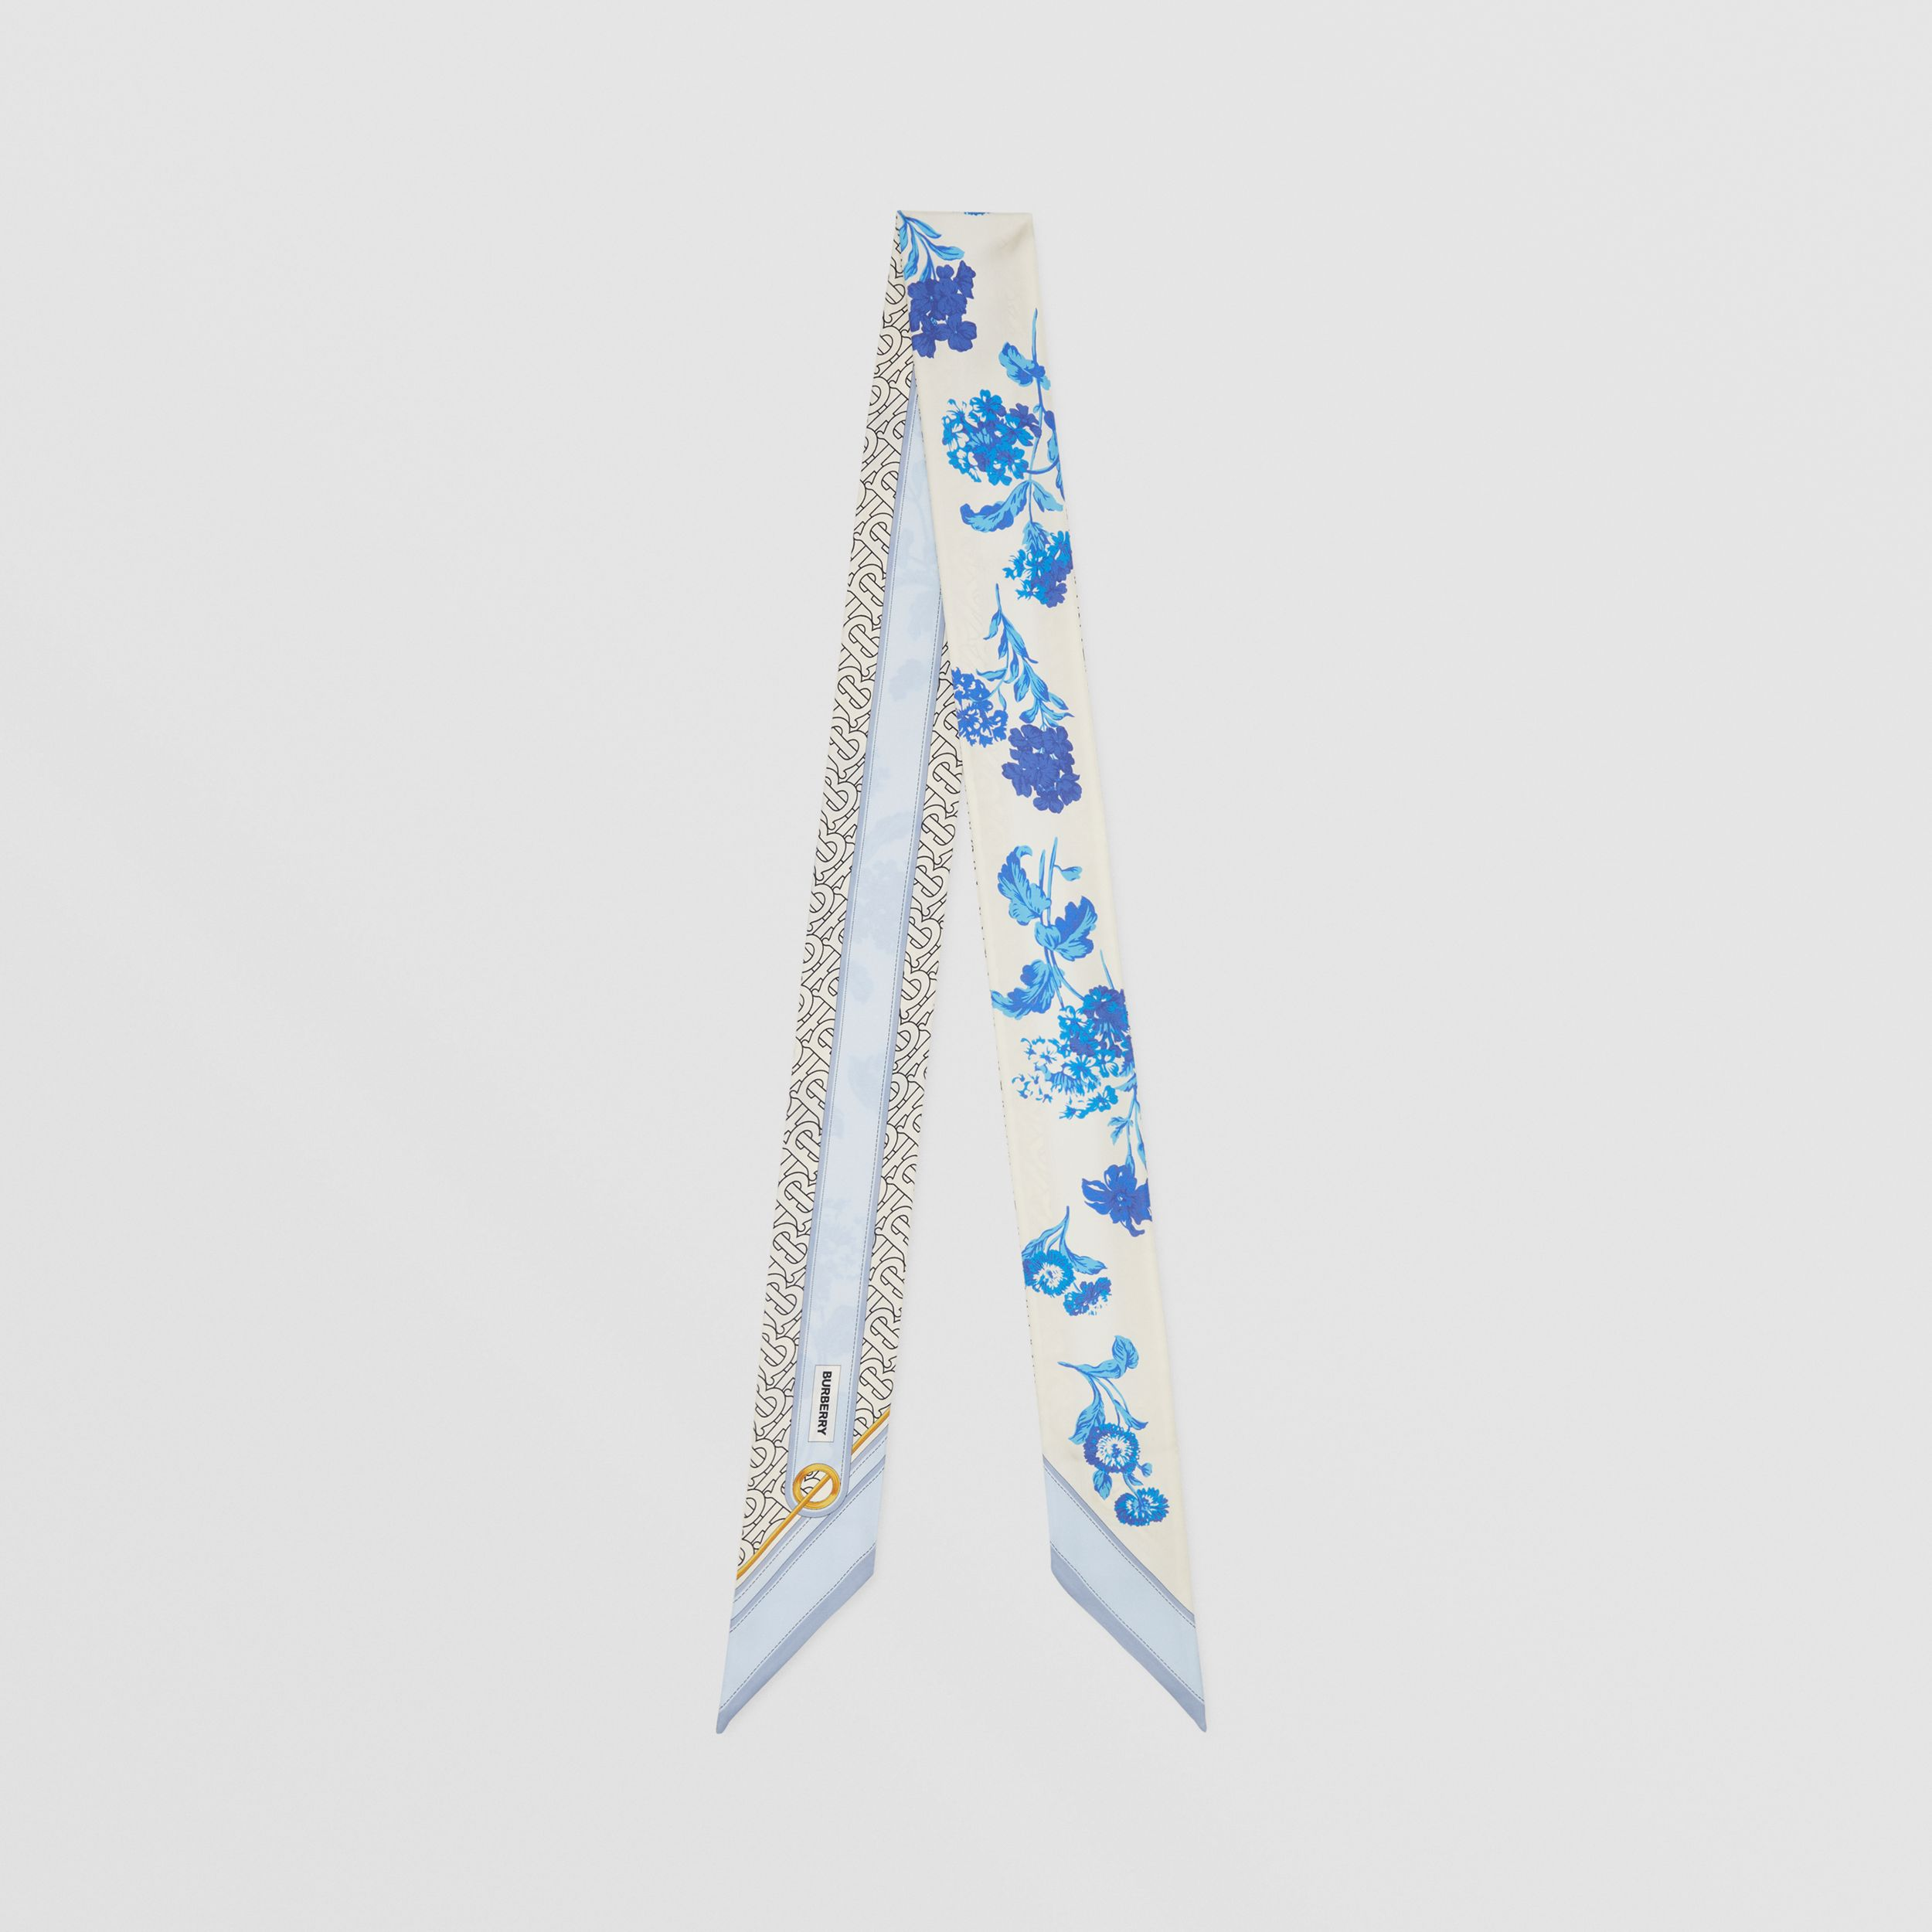 Floral and Monogram Print Silk Skinny Scarf in Pale Blue | Burberry Singapore - 1